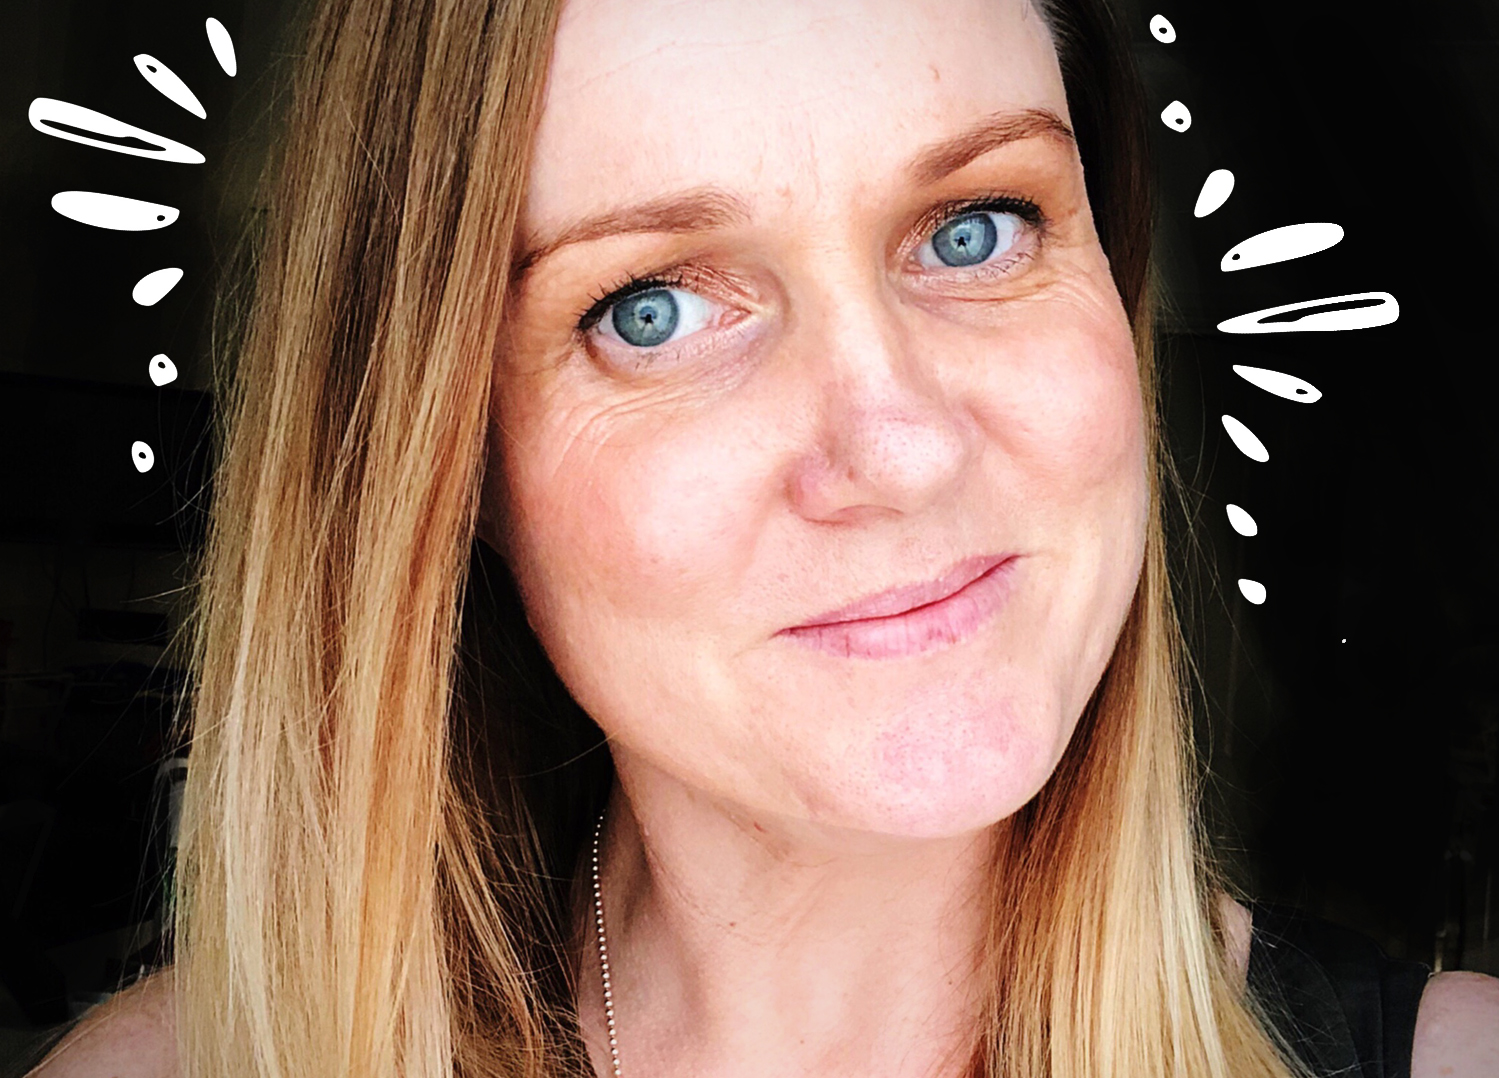 Hey, HI… hello! - I'm Sallyann! My mission here is to give passionate business owners + entrepreneurs the tools, templates, resources and help they need to bring the book of their dreams to life!Because here's one thing I know for sure - a killer book design & front cover design makes ALL THE DIFFERENCE between someone picking up your book, or picking up someone else's book ... Let's make sure they pick up yours! ;) .